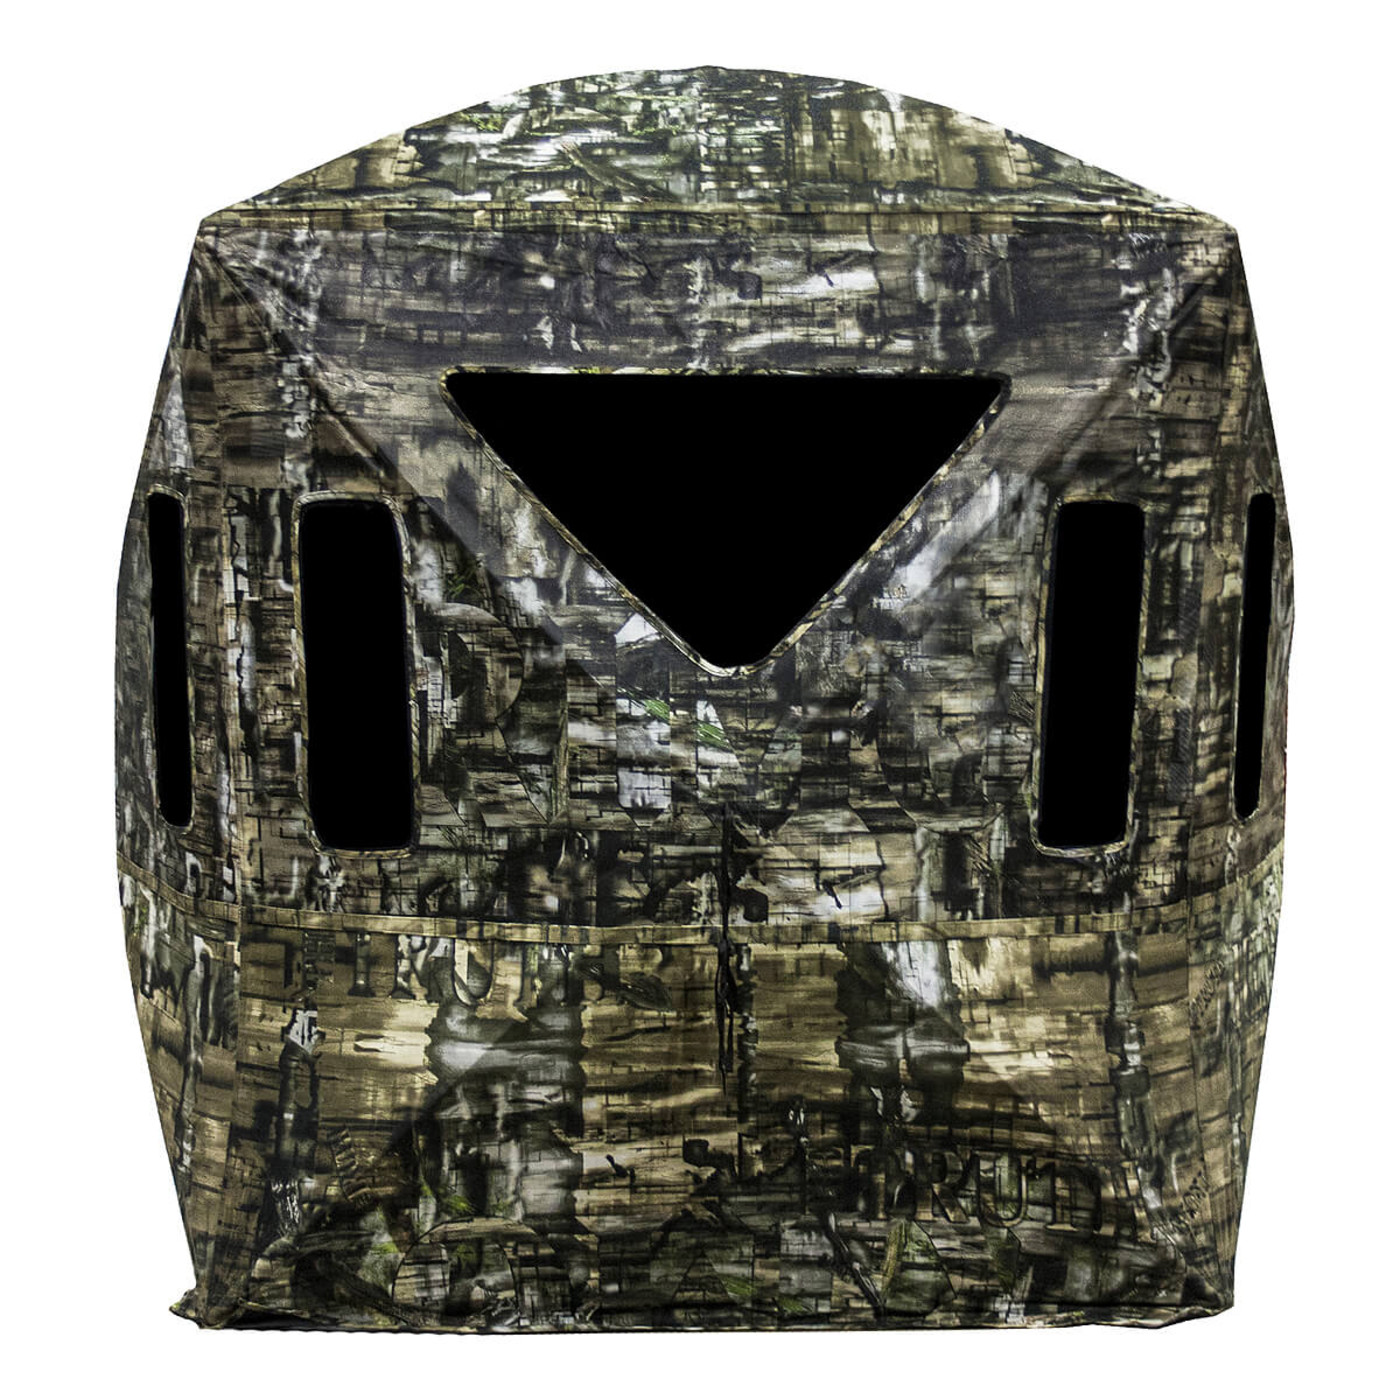 Brands Primos Outdoor Products Square Backpack Abu Surroundview 270 Double Bull Blind